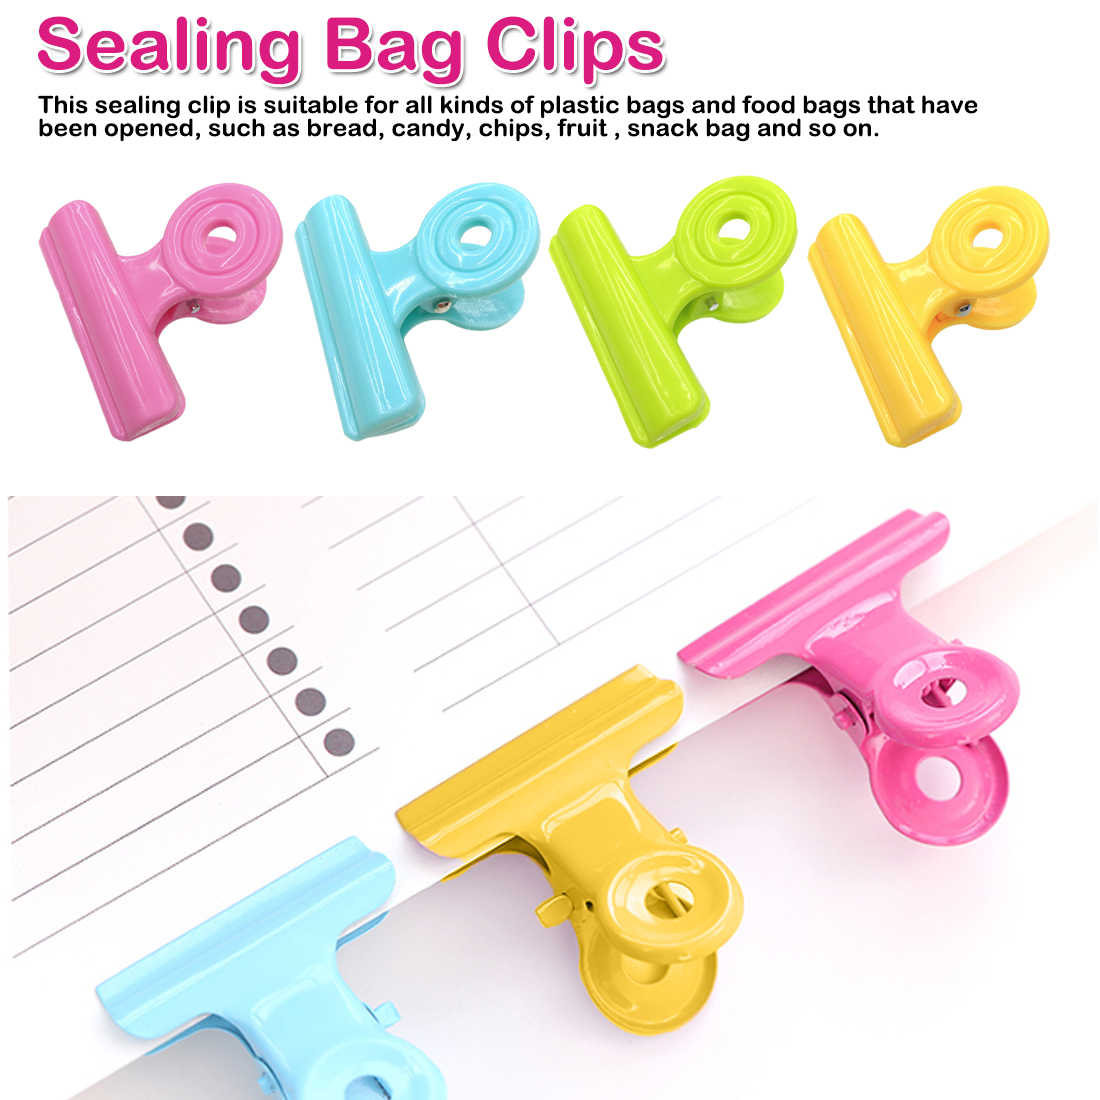 5Pcs Plastic Chip Bag Clips For Air Tight Seal Grip Food Sealing Clamp Clip Powder Food Package Bag Clip